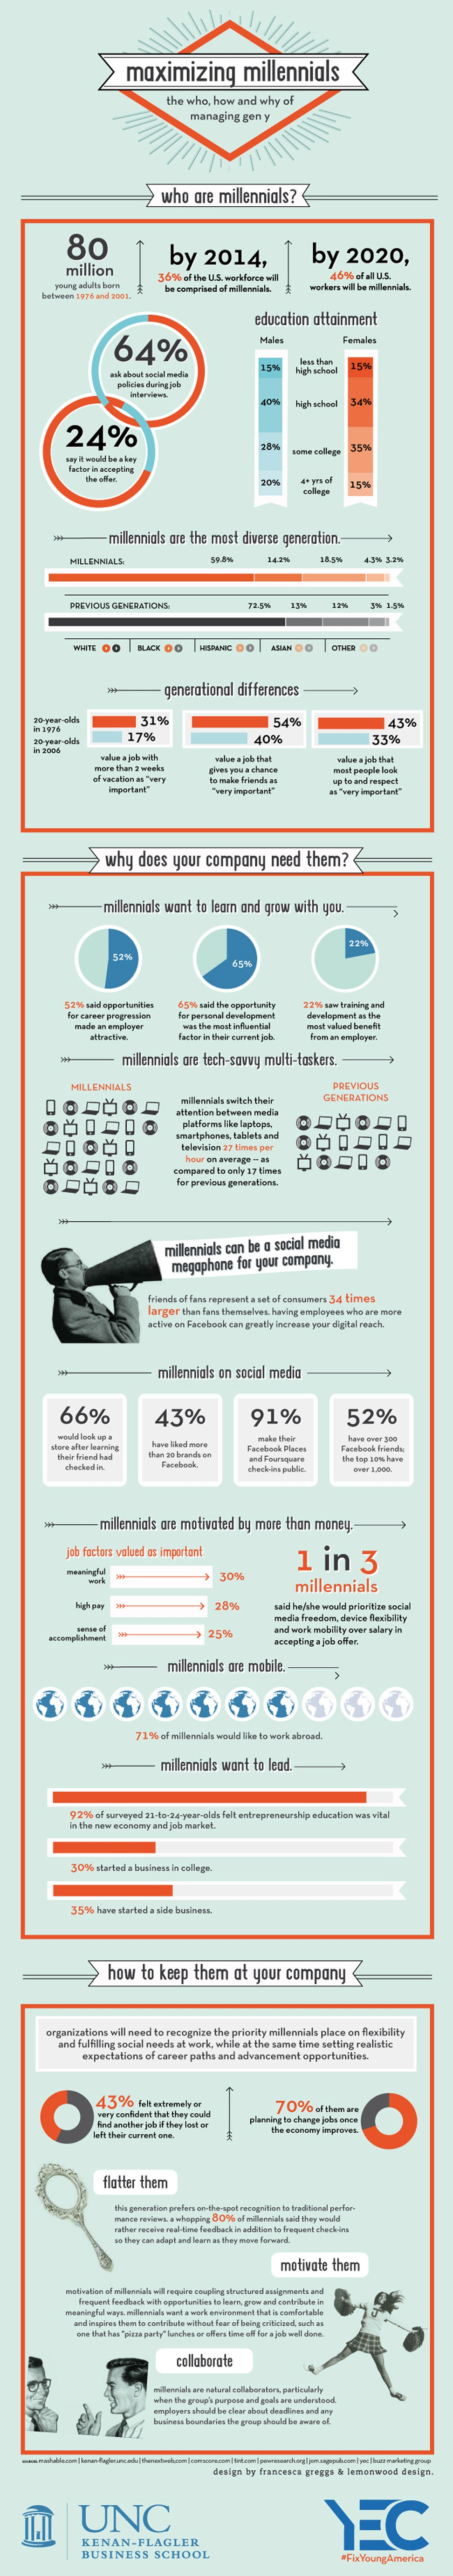 Infographic - Millennials and the workplace